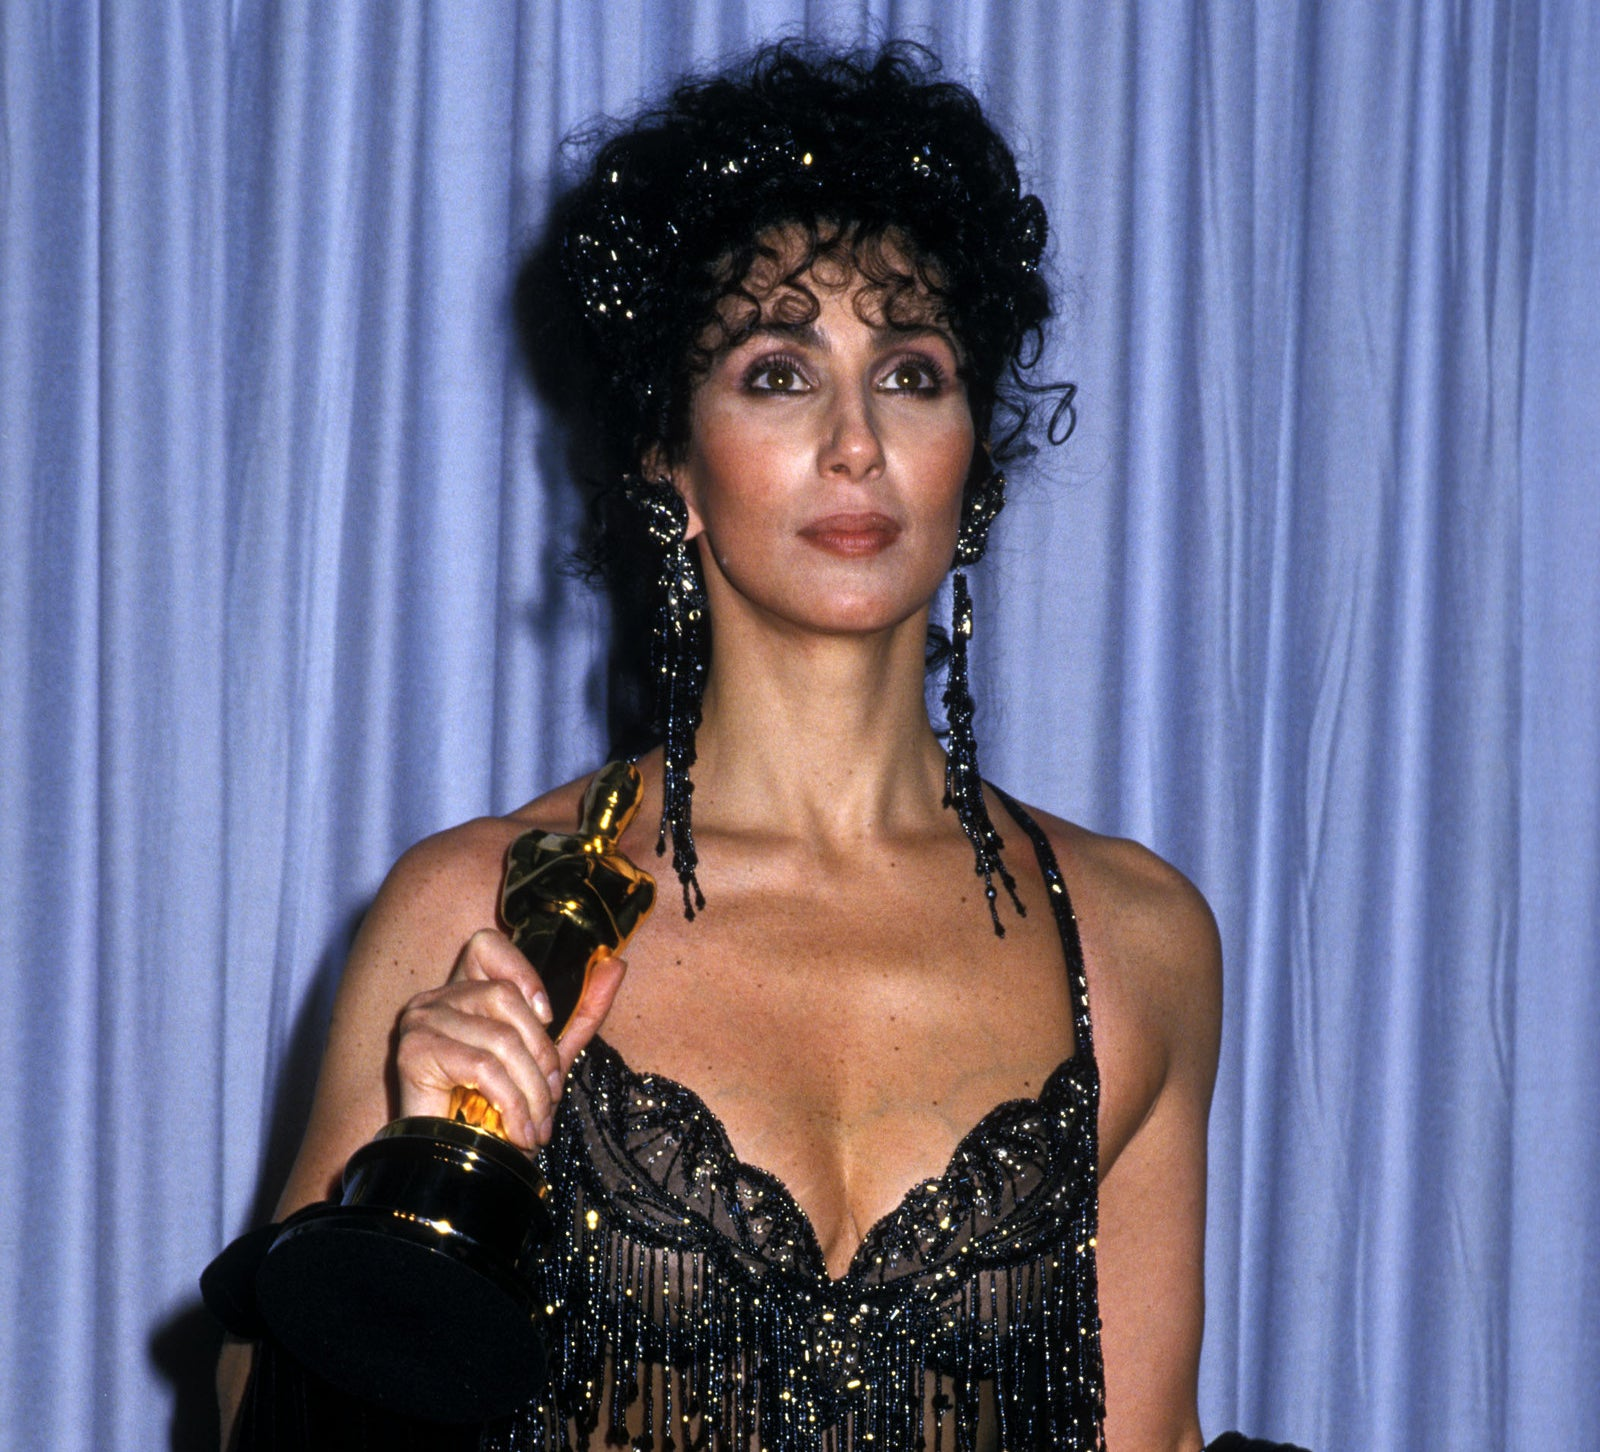 Cher won the Oscar for Best Actress for her role in Moonstruck.